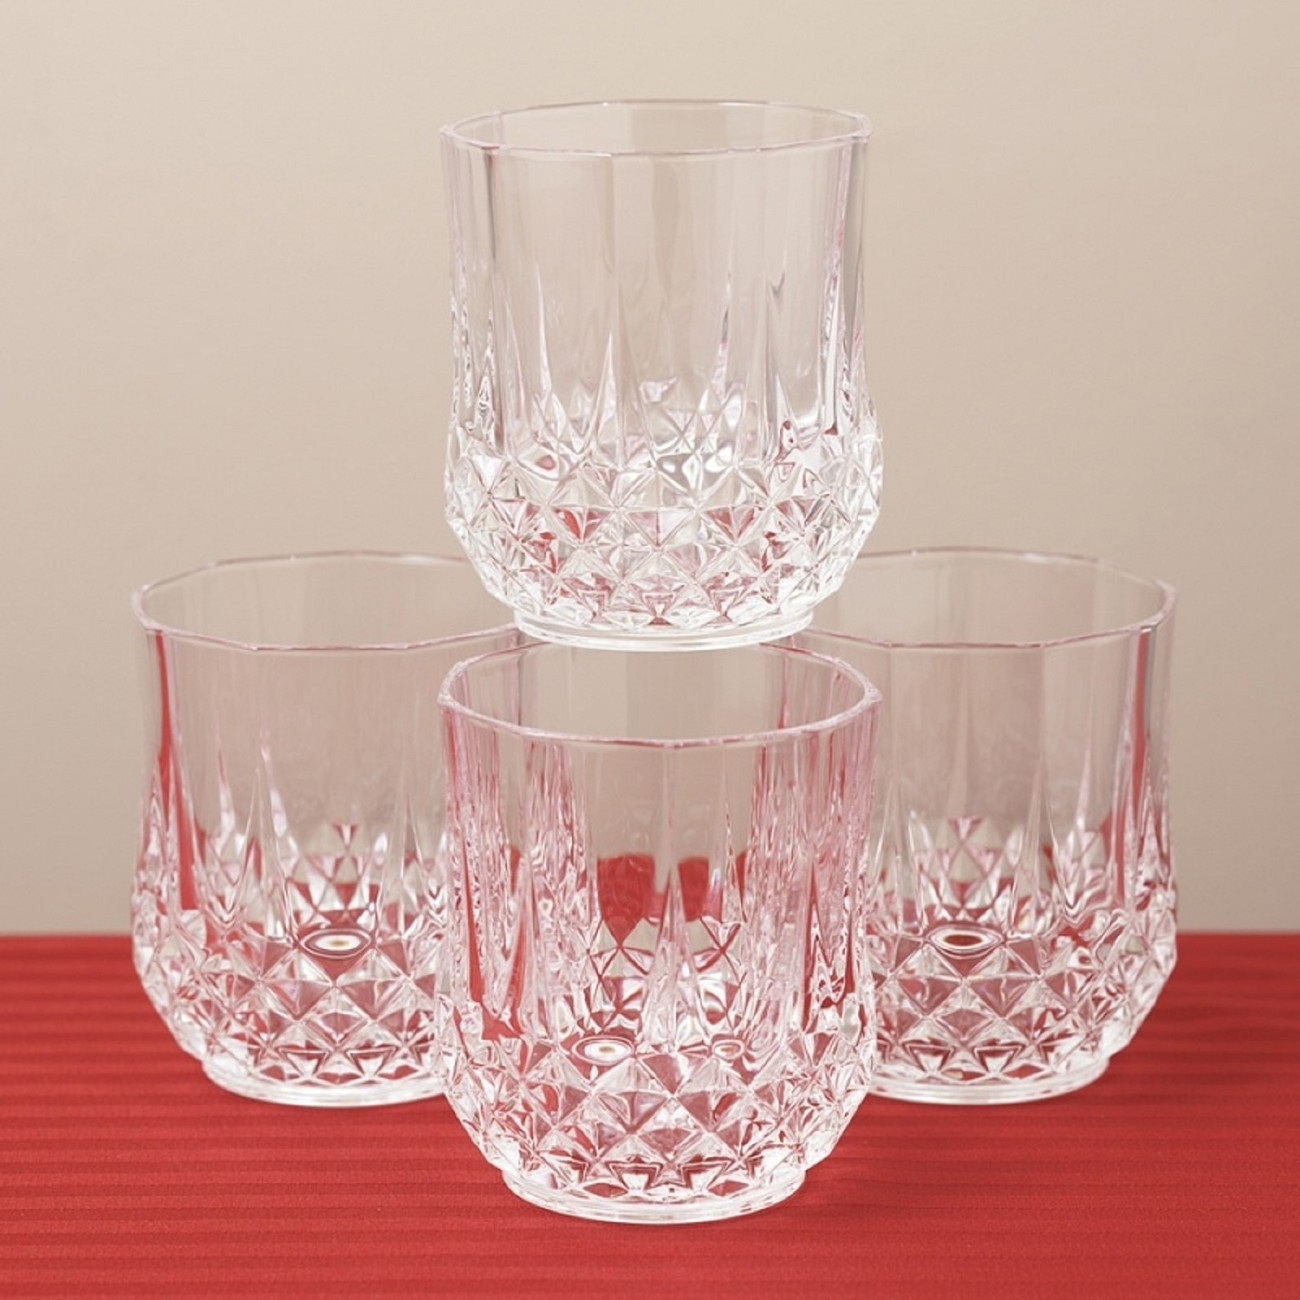 Primary image for LONGCHAMP CRISTAL  D'ARQUE  OLD FASHION WHISKY  WATER JUICE GLASS SET OF 4